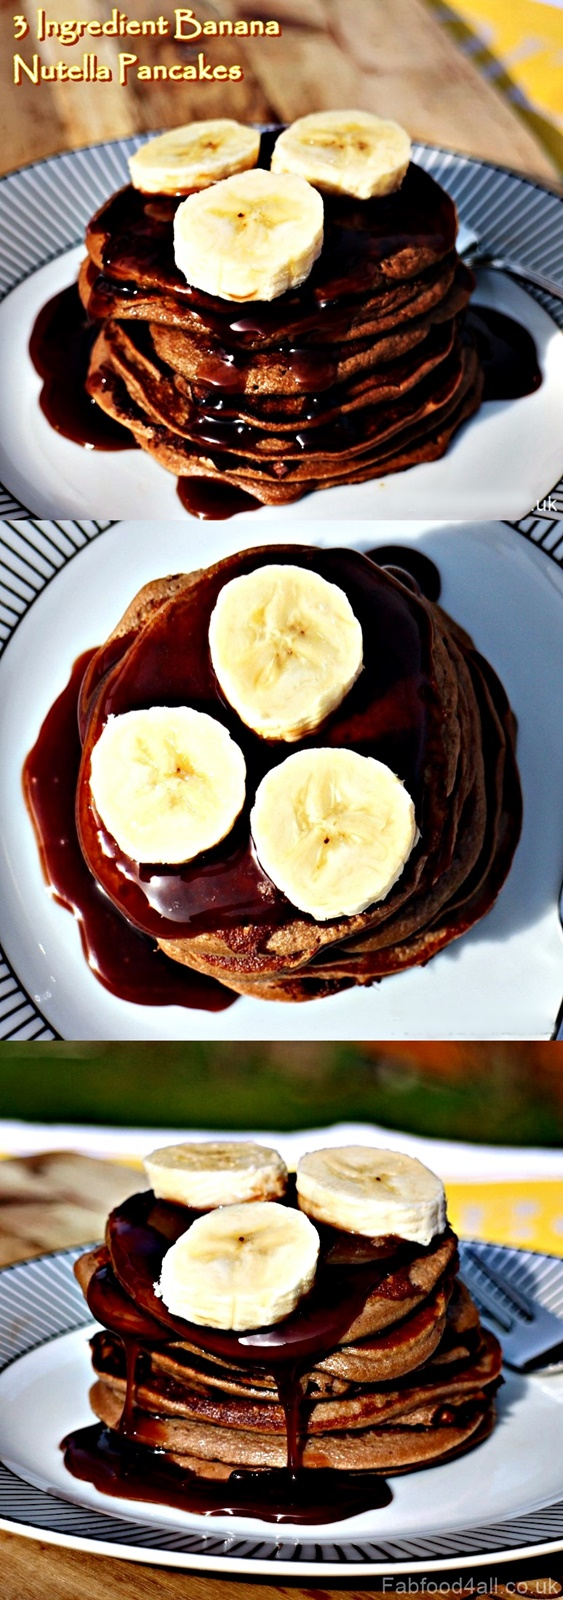 3 Ingredient Banana Nutella Pancakes #Glutenfree - Fab Food 4 All